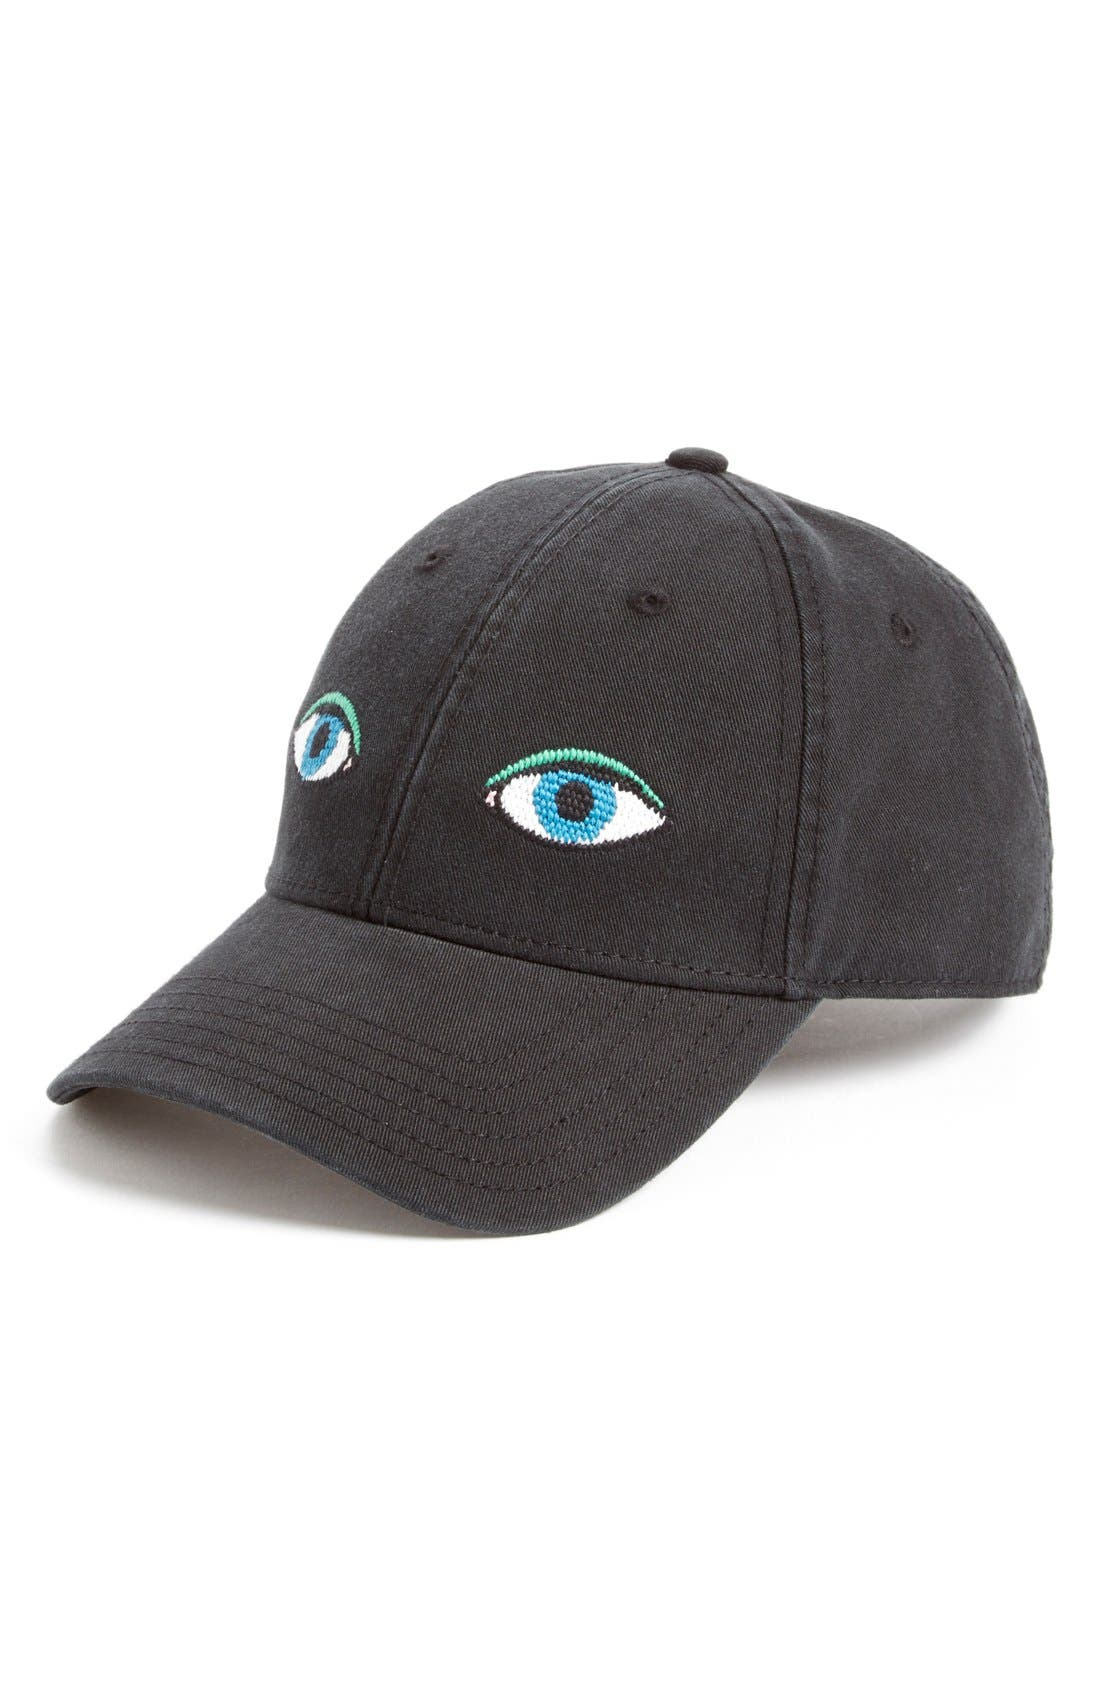 Main Image - Opening Ceremony 'Eye' Cap